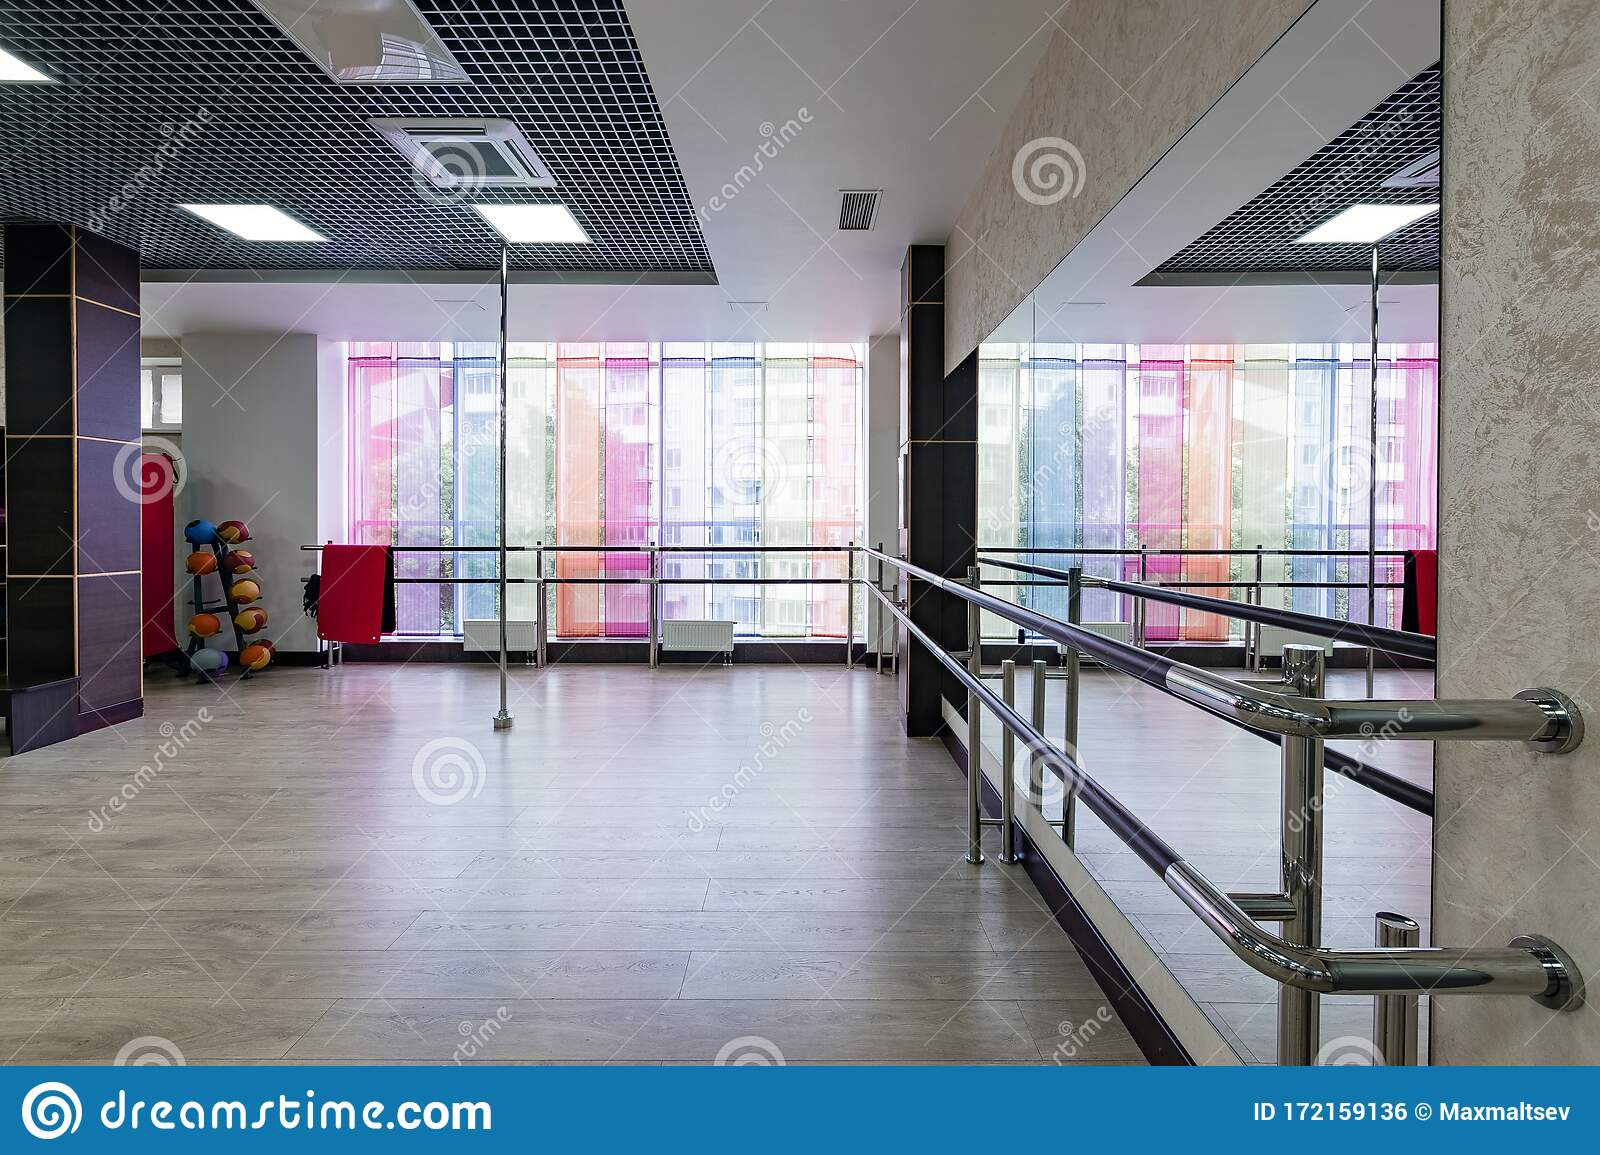 Group Fitness Room Modern Interior Design Fitness Workout Fitness Gym Background Gym Equipment Background Empty Stock Photo Image Of Equipment Design 172159136